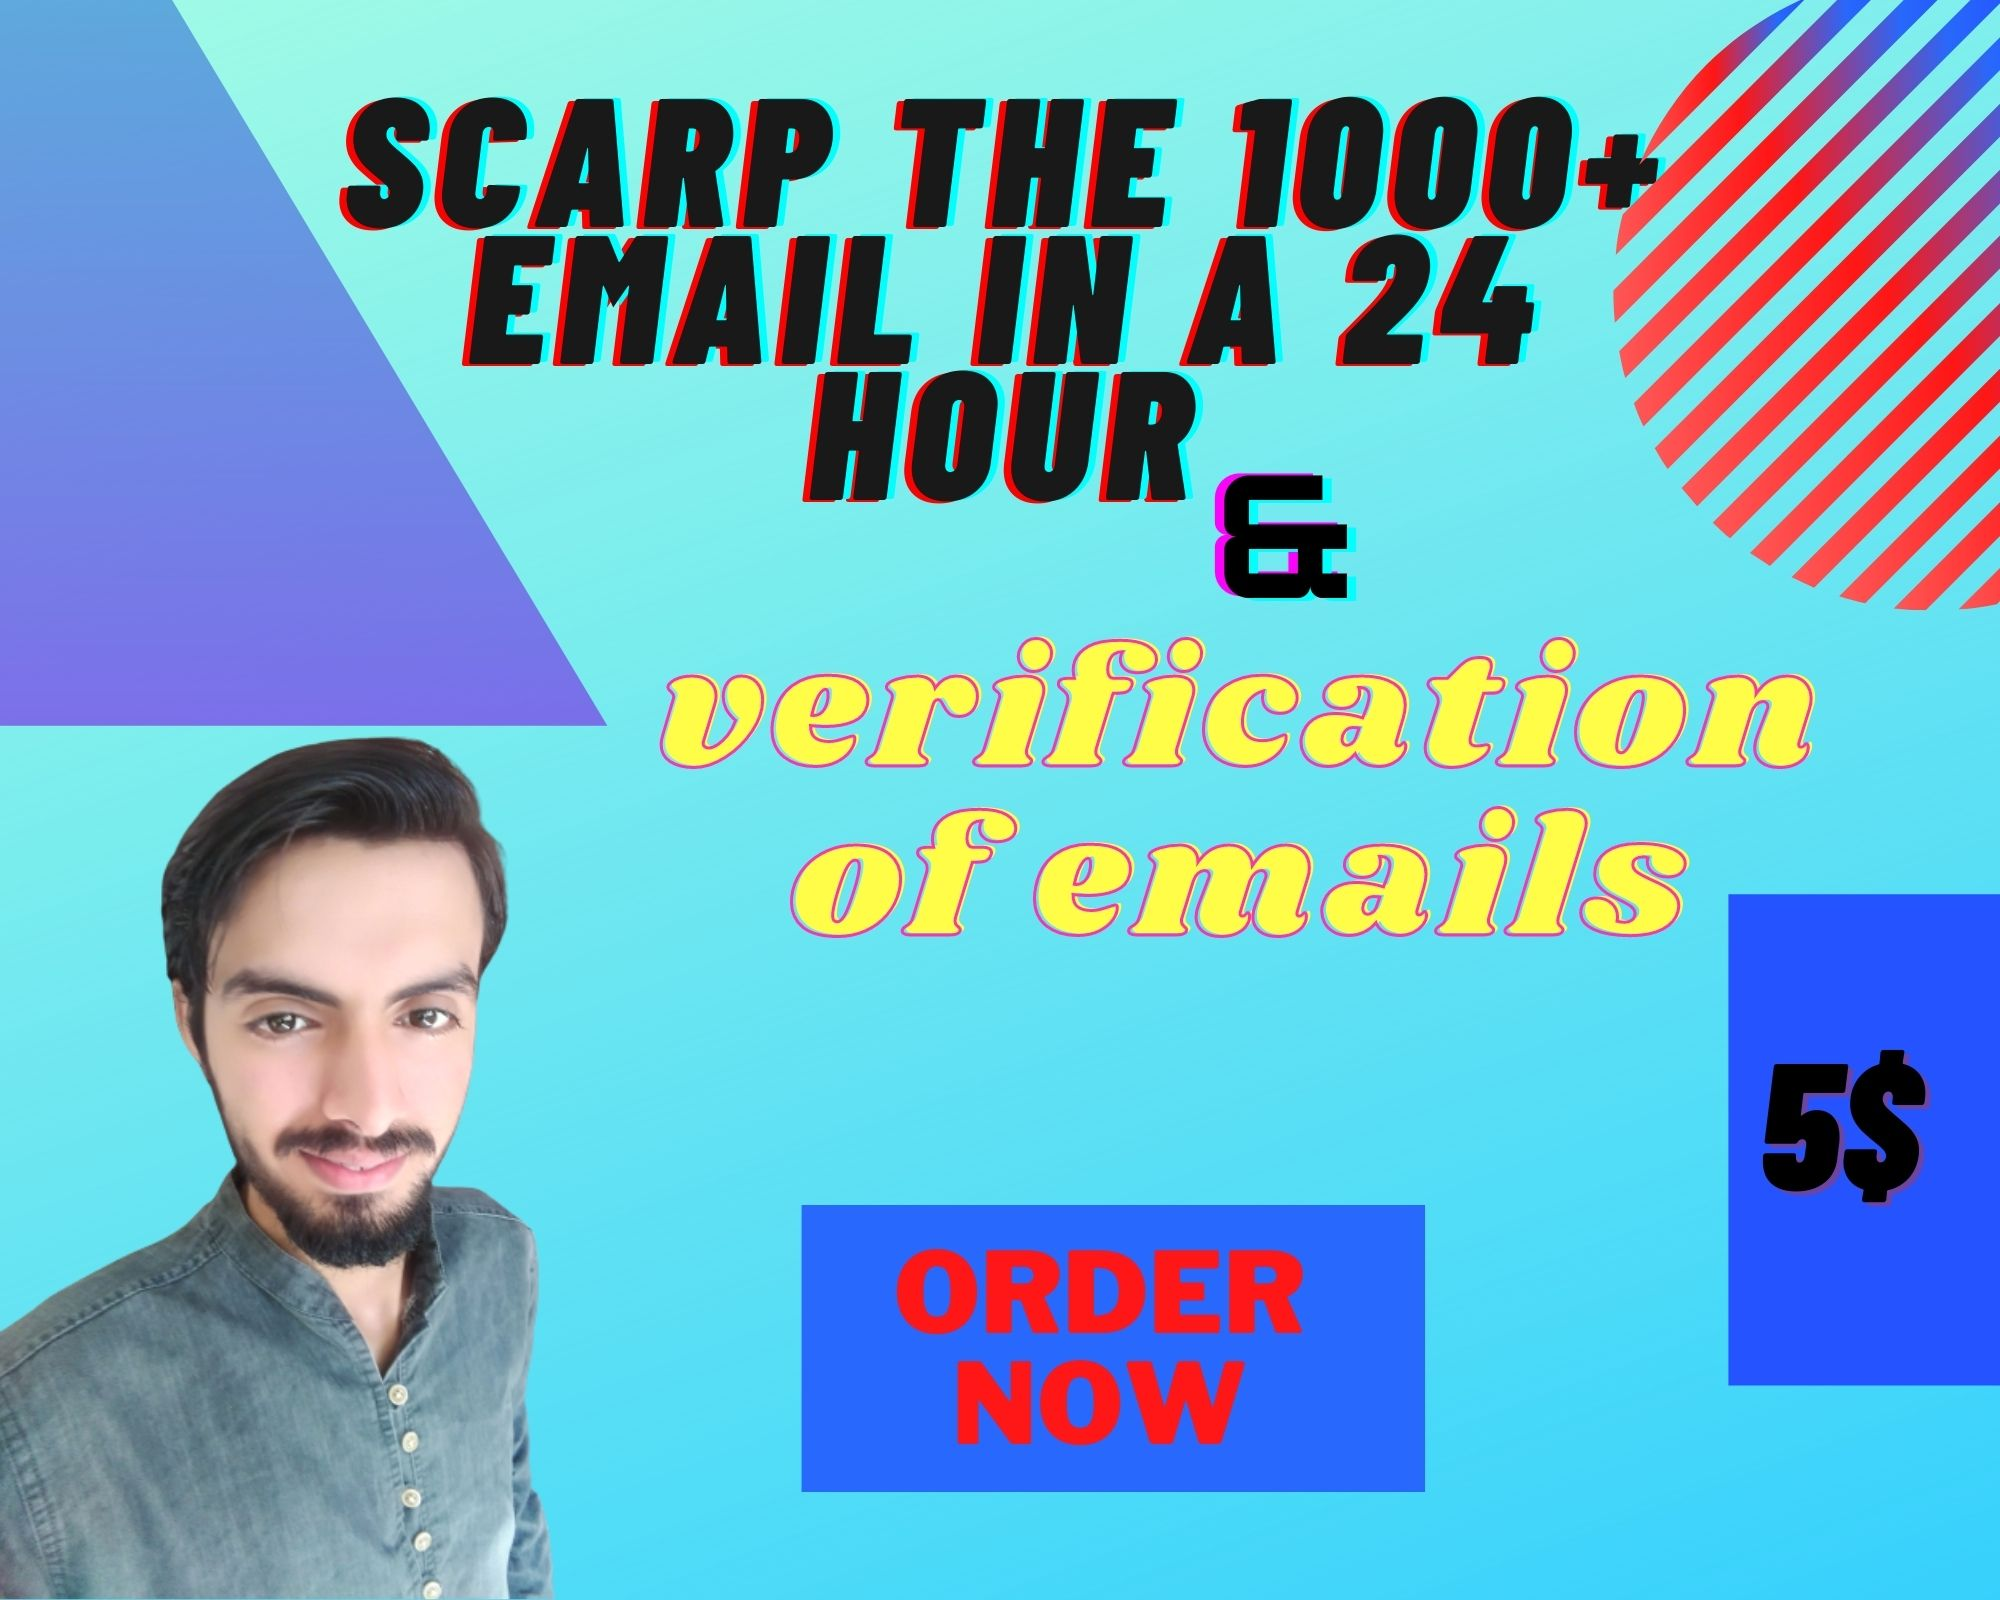 I will do 1000+ email scrap from social media and verification in 24 hr